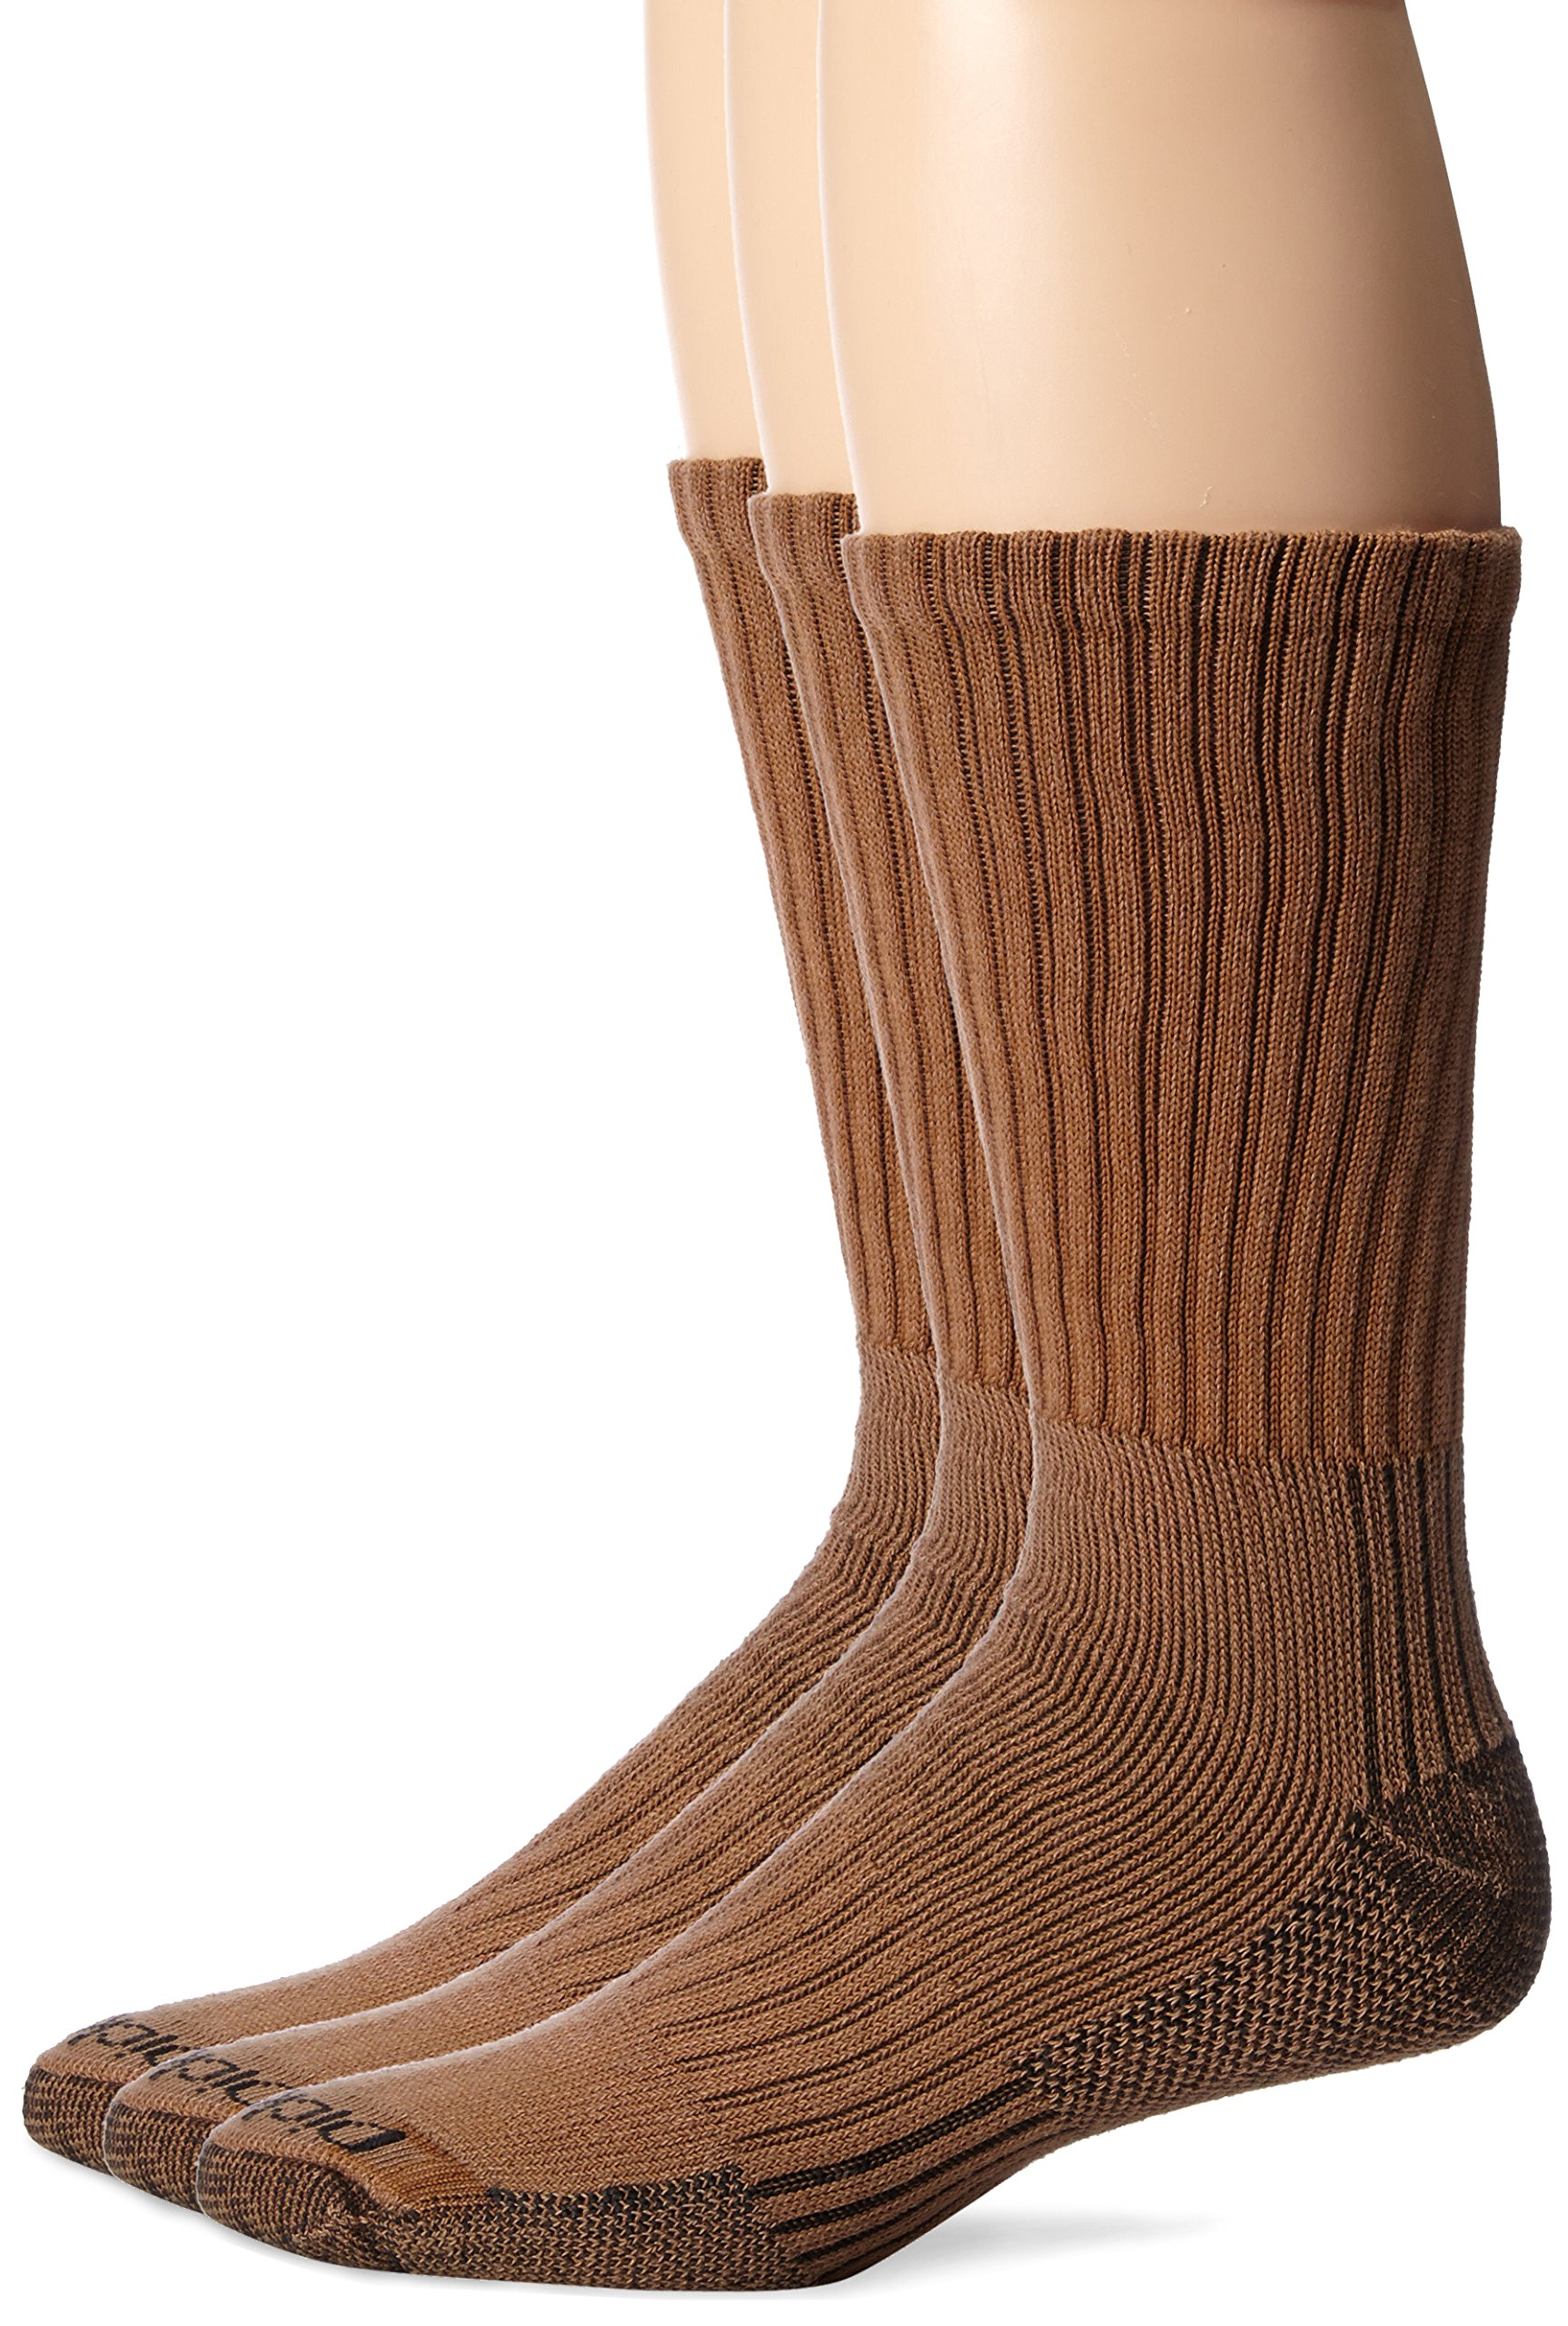 Dickies Men's 3 Pack Heavyweight Cushion with Ankle & Arch Compression Work Crew Socks, Brown, Sock Size:10-13/Shoe Size: 6-12